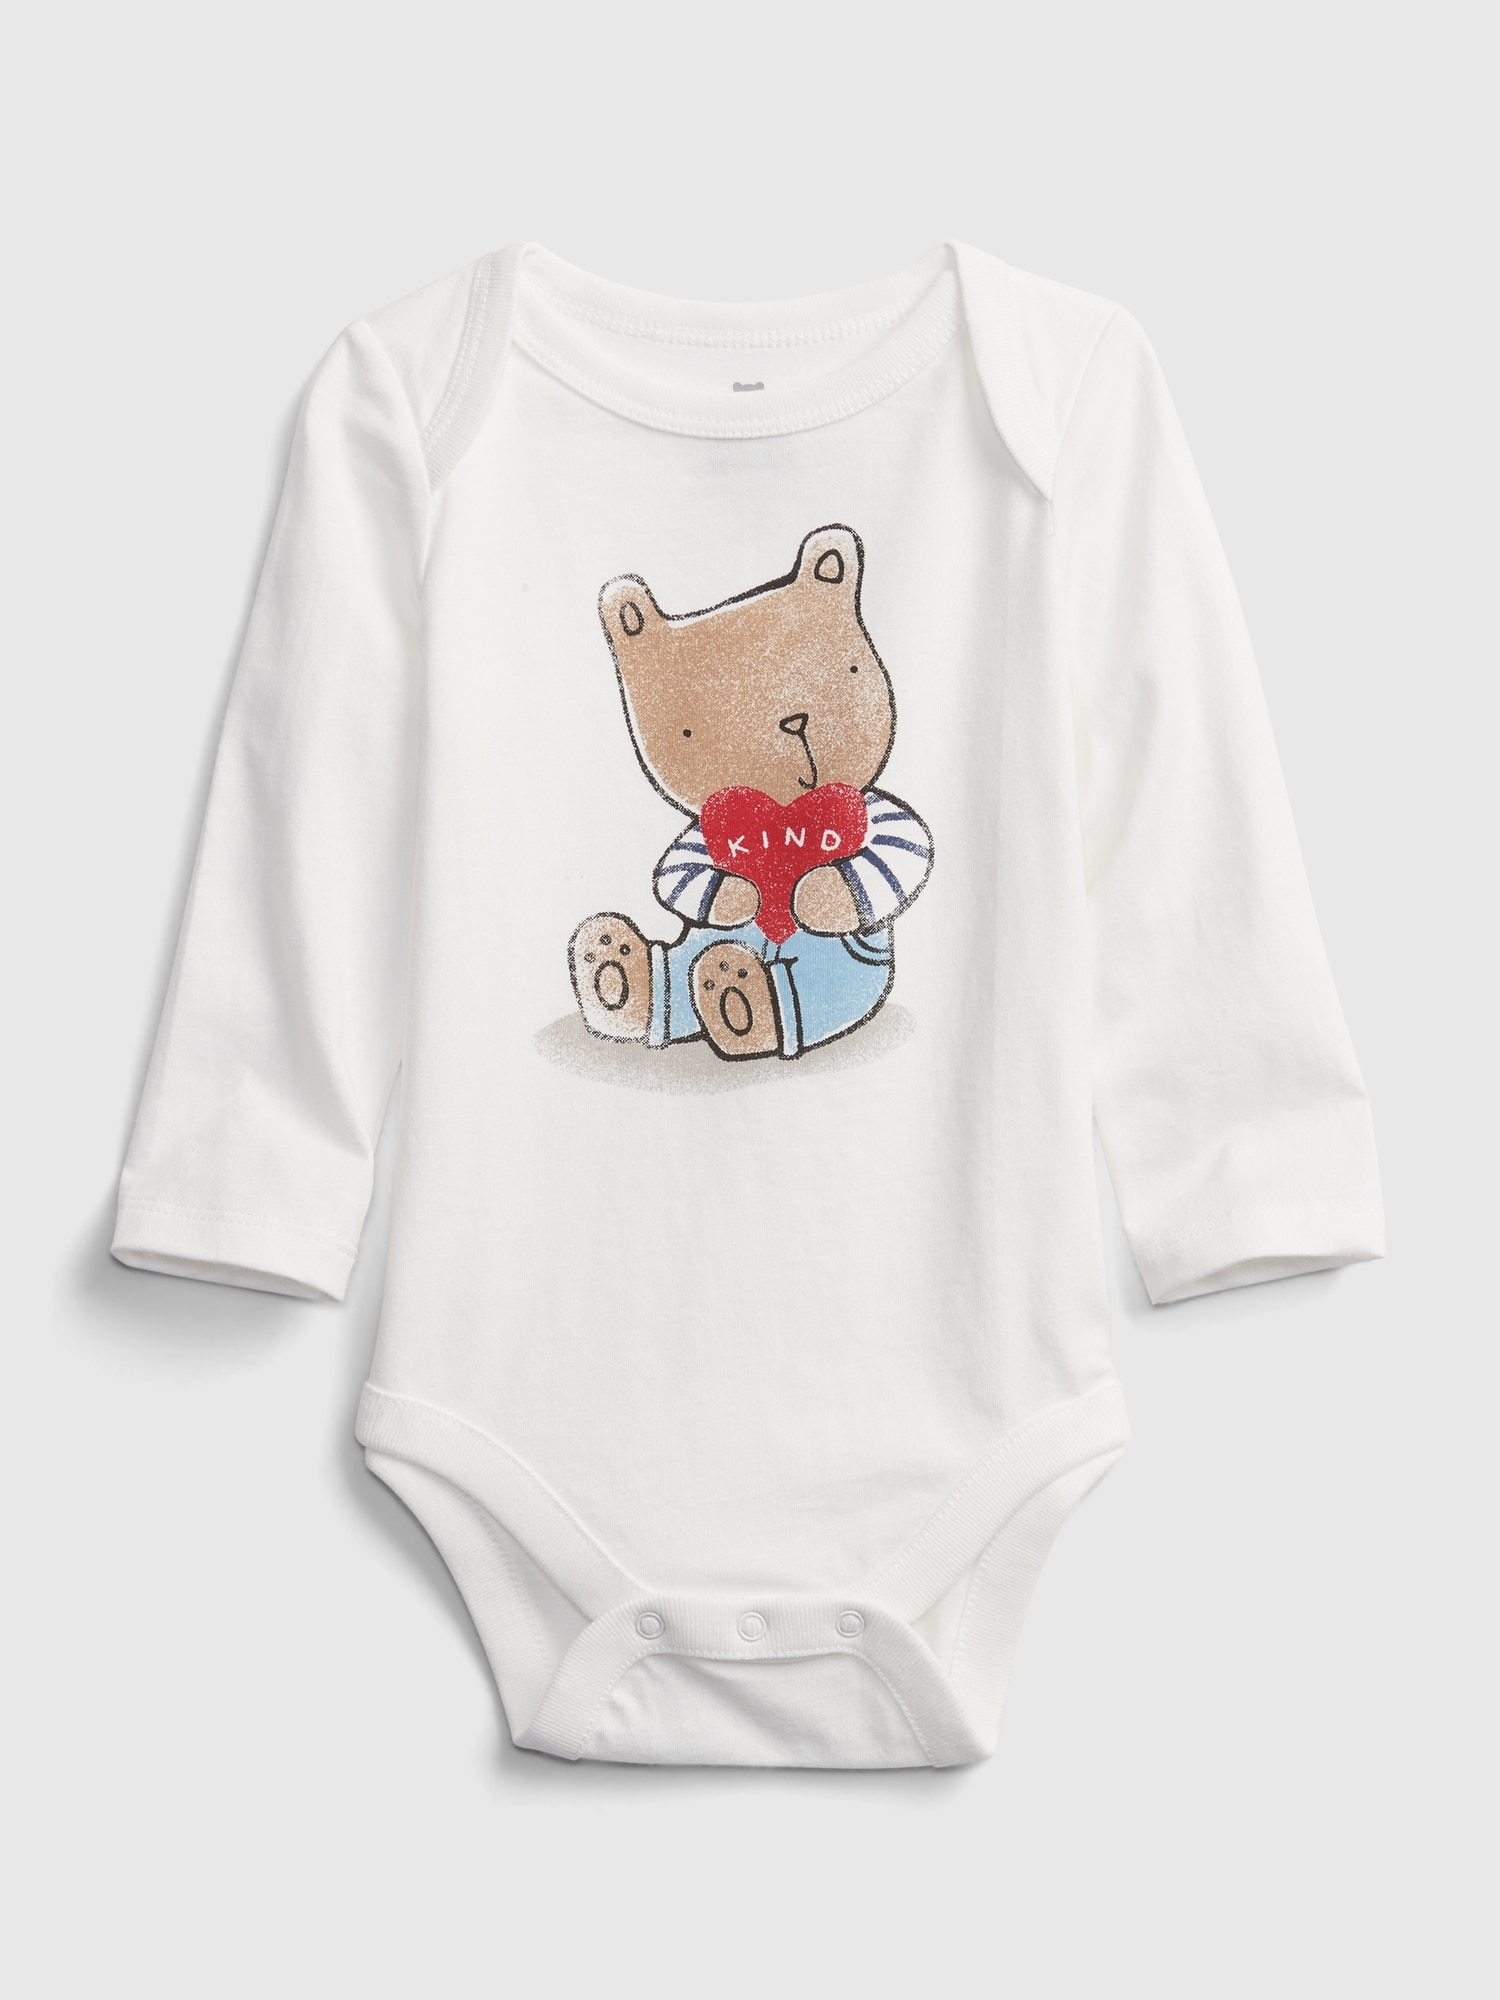 Baby body mix and match winter graphic bodysuit (1)